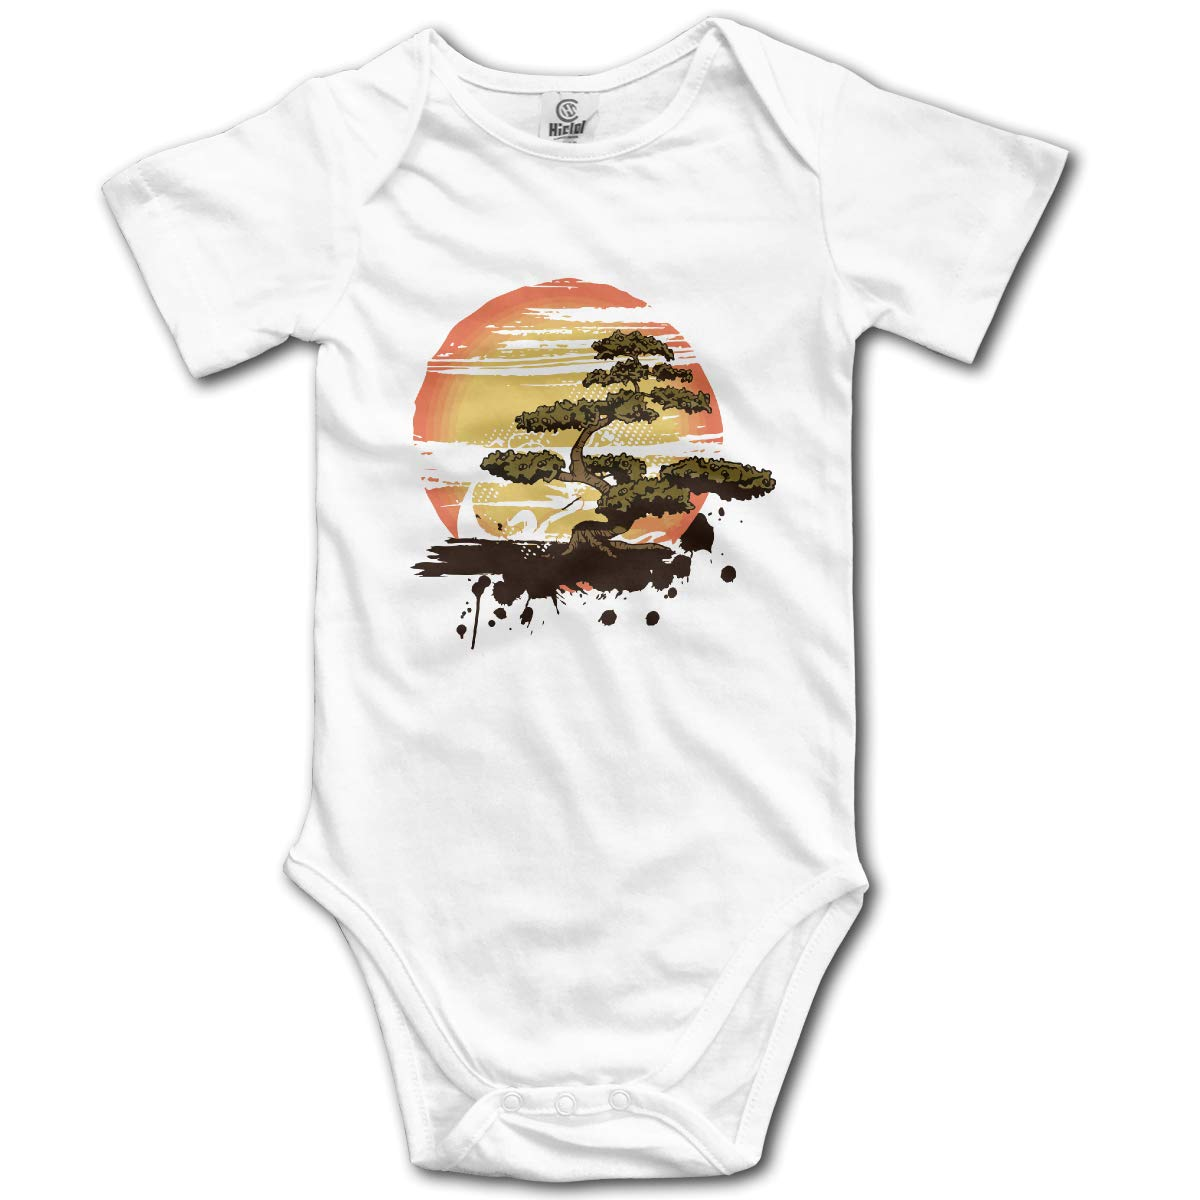 CDHL99 Bonsai Tree Newborn Infant Baby Short Sleeve Romper Pajamas 0-2T